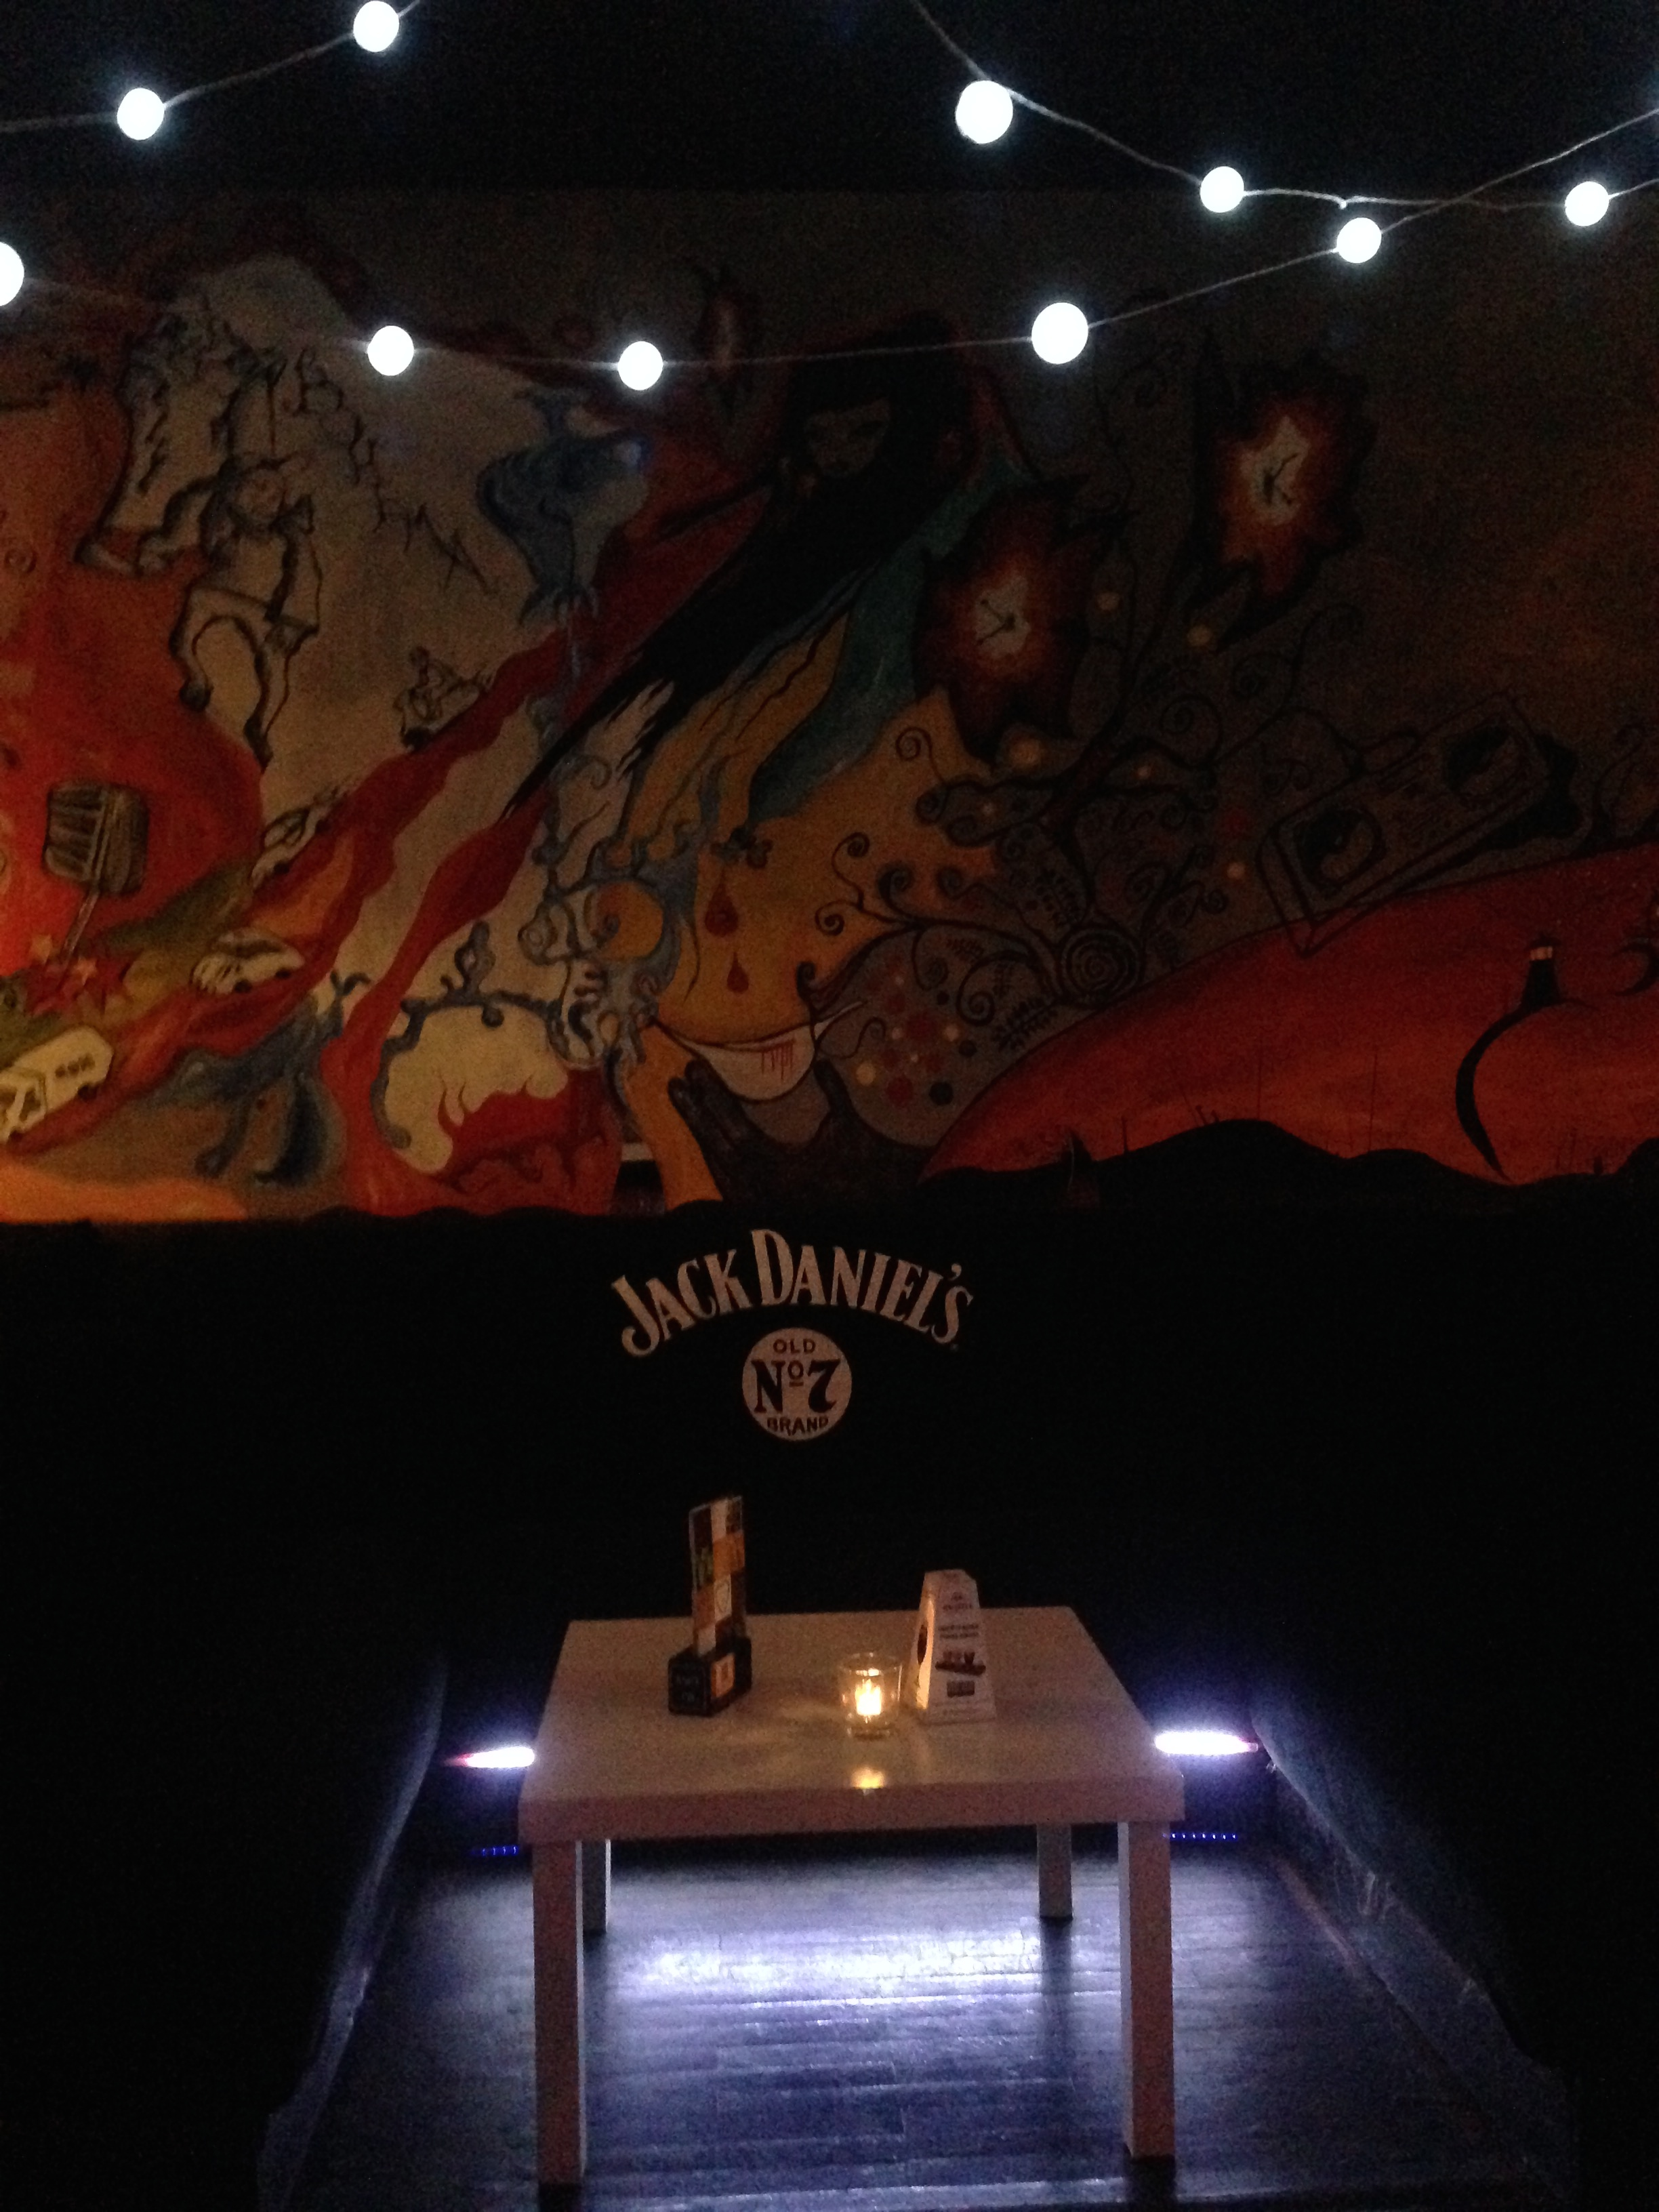 The coolest looking bar we went to in Wroclaw